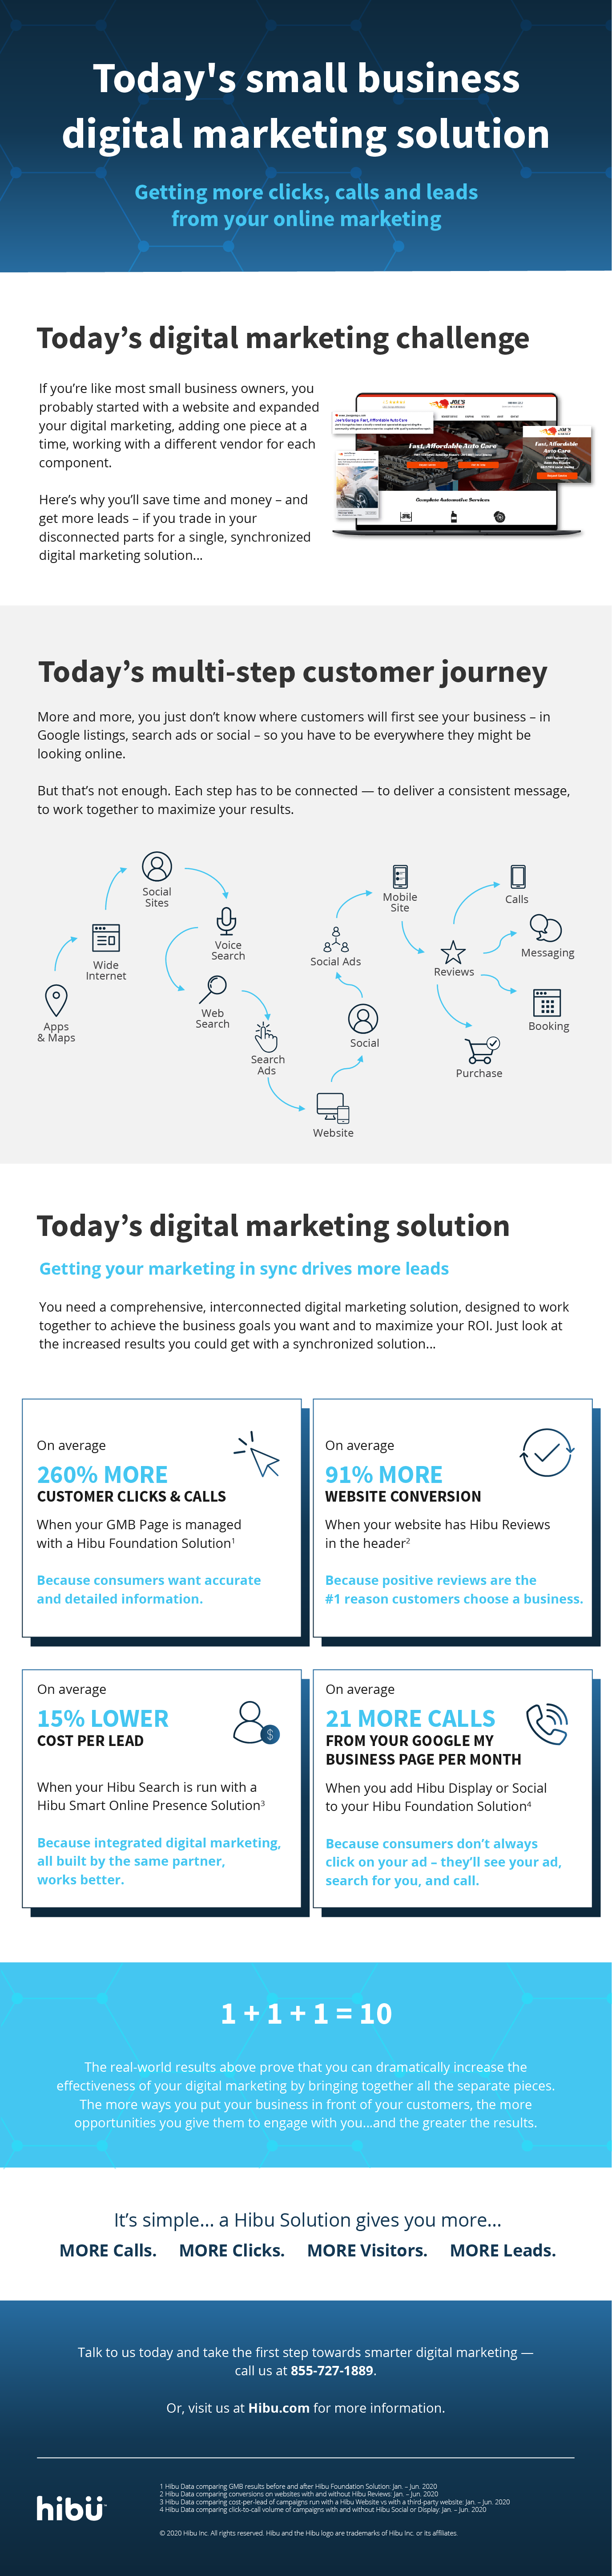 Infographic - Today's small business digital marketing solution